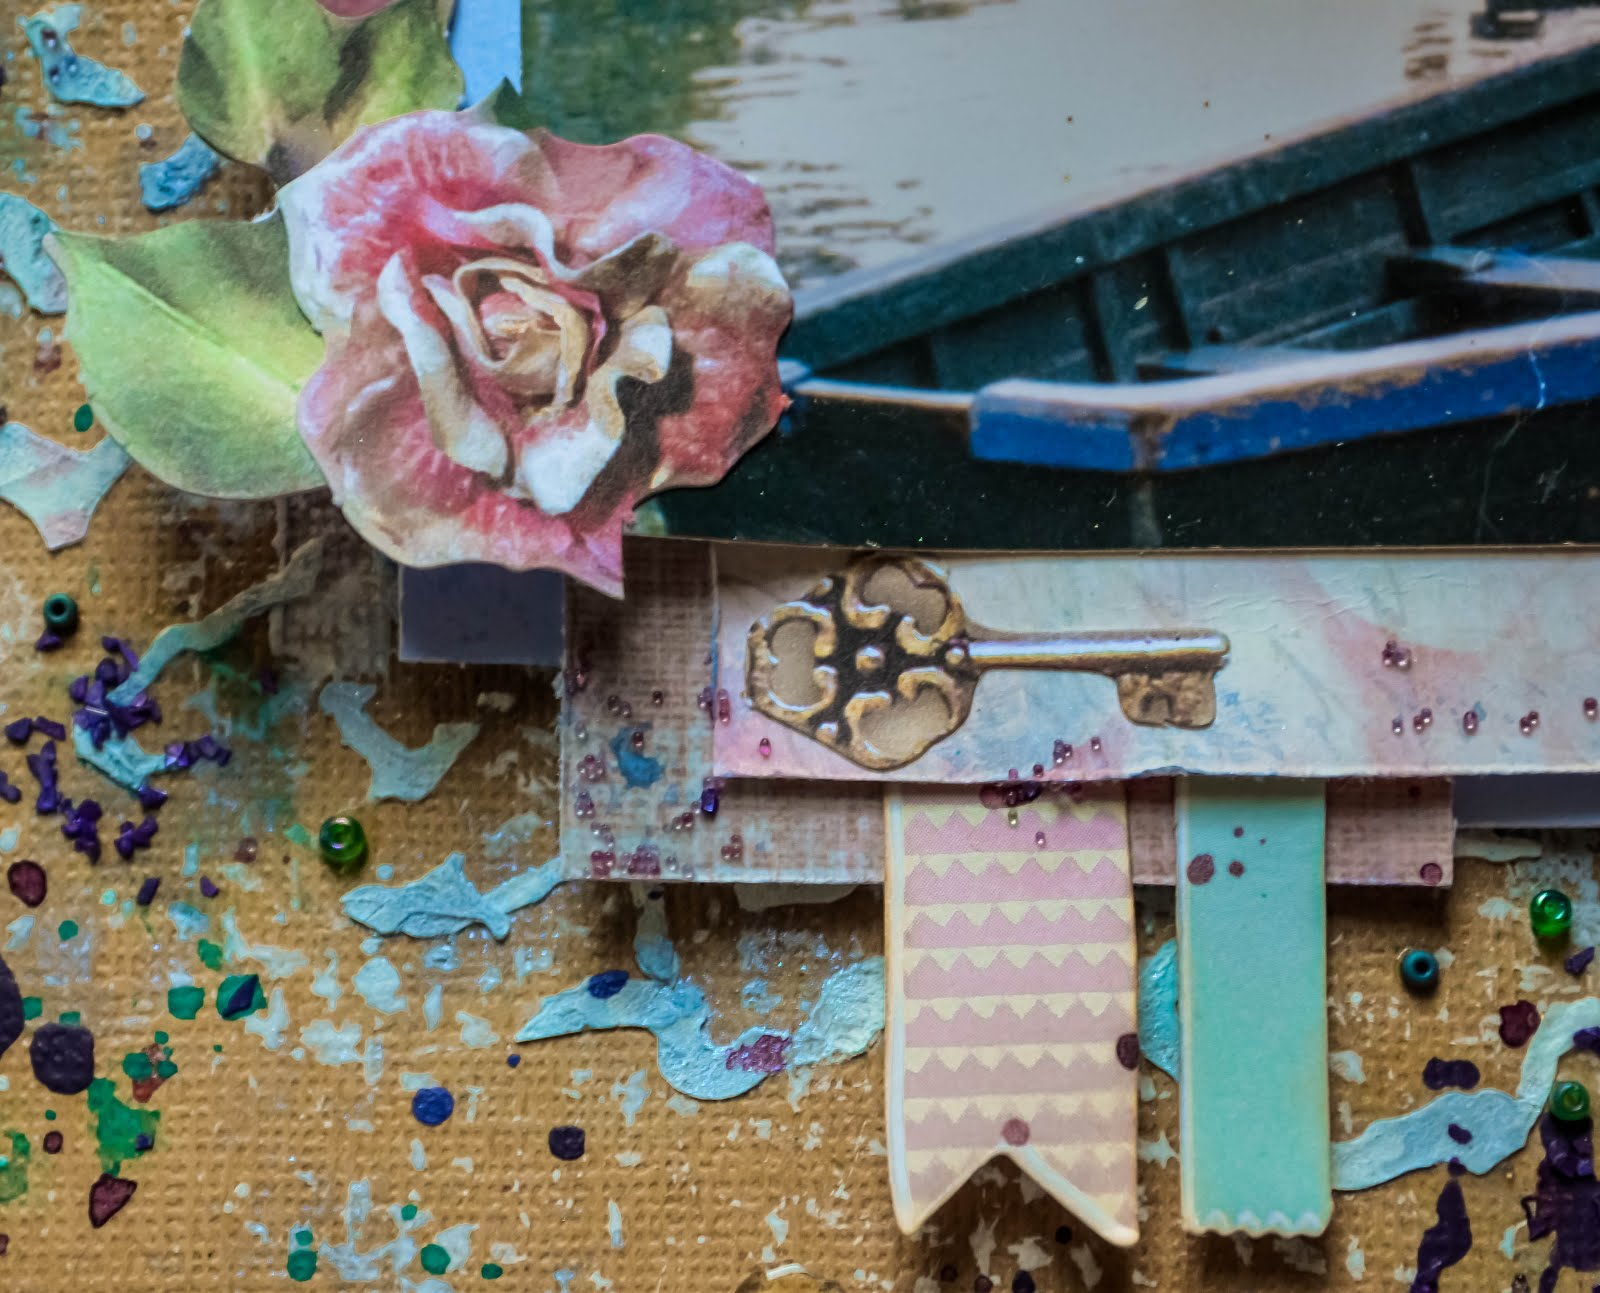 Mixed media layout on kraft background with vintage die cuts and paint splatters with seed beads, micro beads, mica flake fragments, and glass glitter